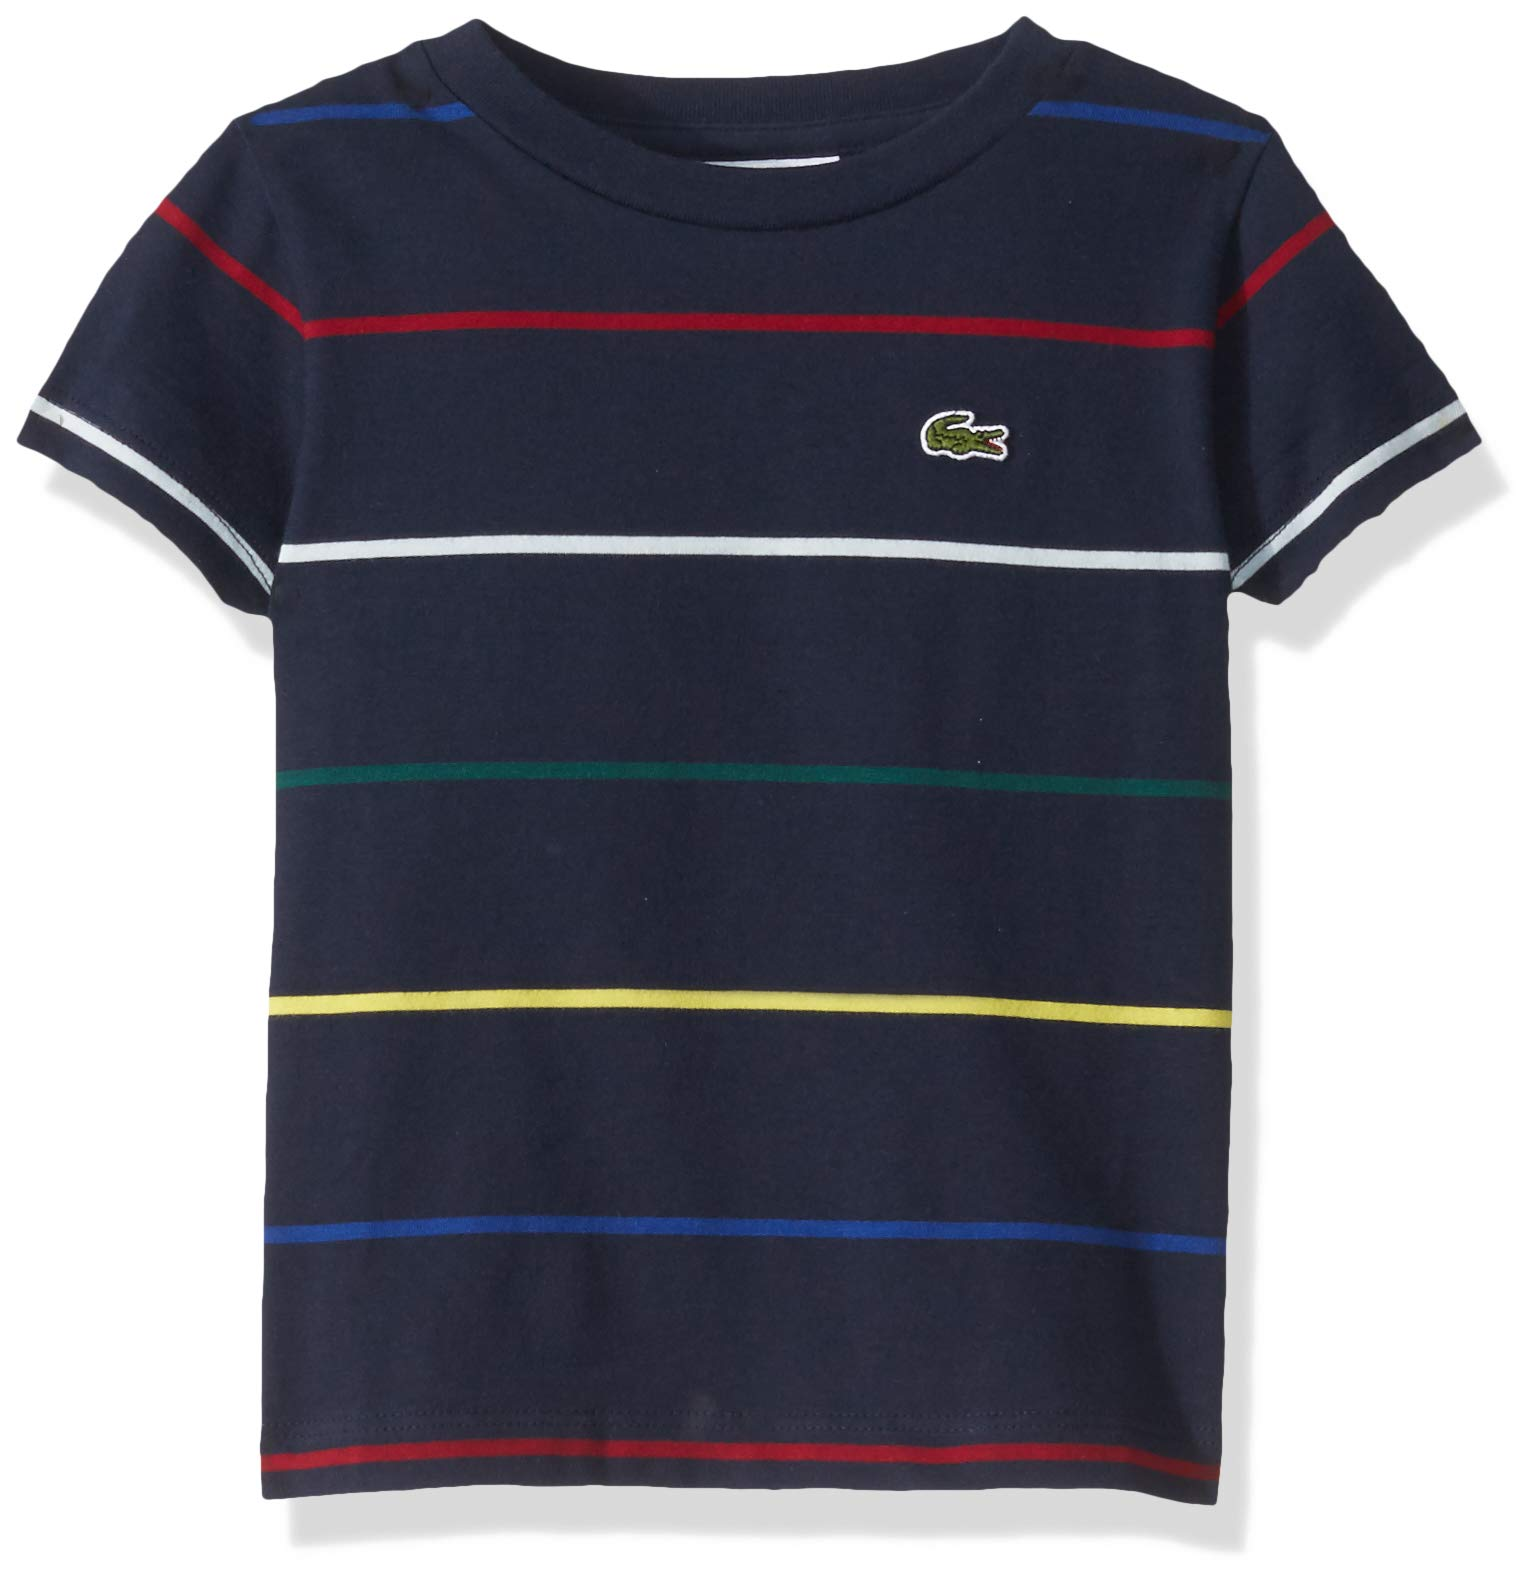 Lacoste Toddler BOY Thin Multicolor Stripes TEE Shirt, Navy Blue/Multi, 3YR by Lacoste